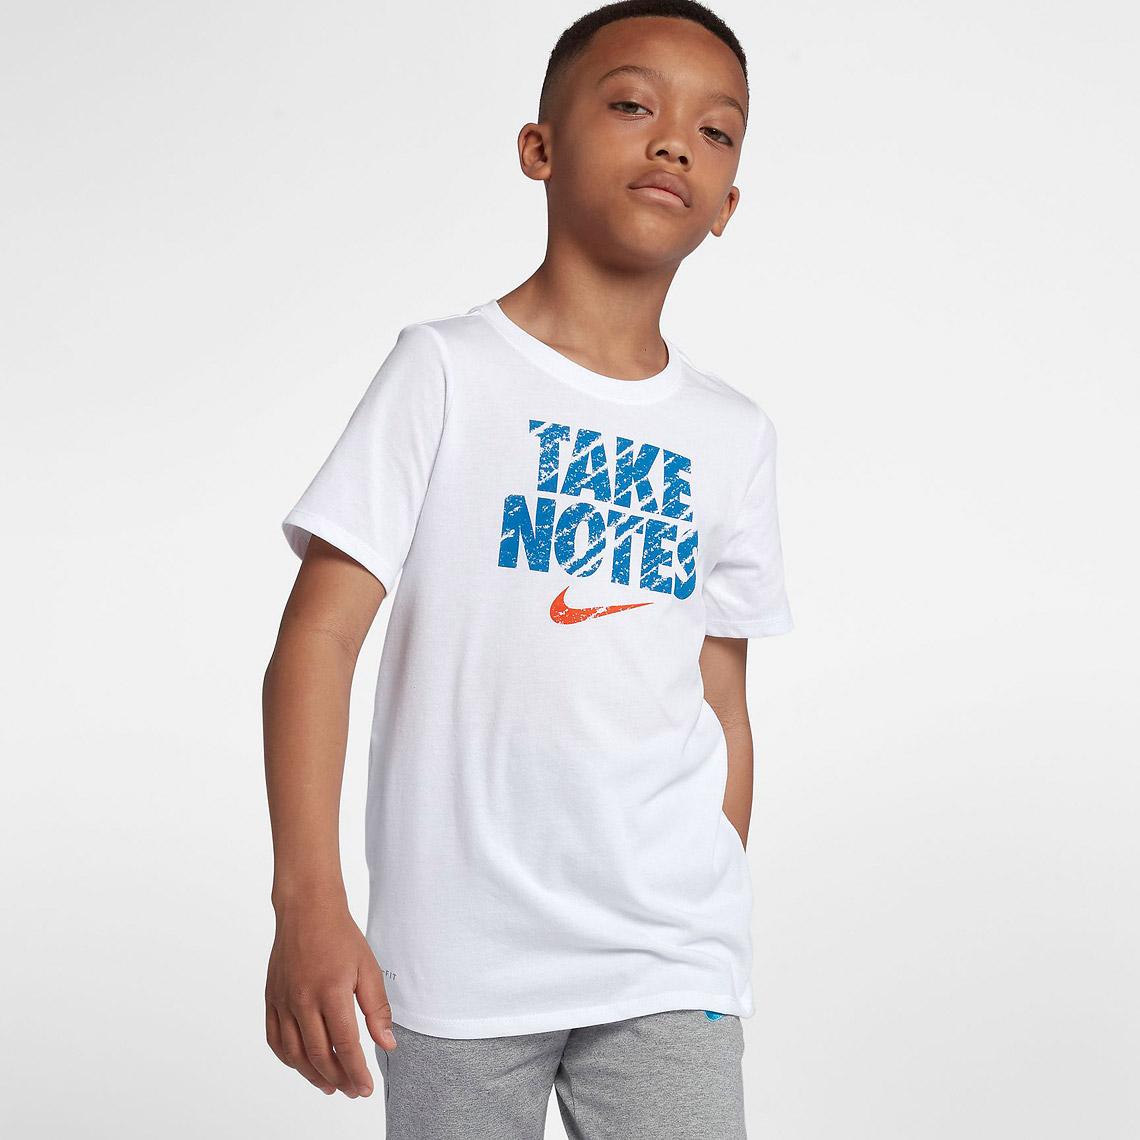 dri-fit-take-notes-big-kids-boys-t-shirt-DNnPrv